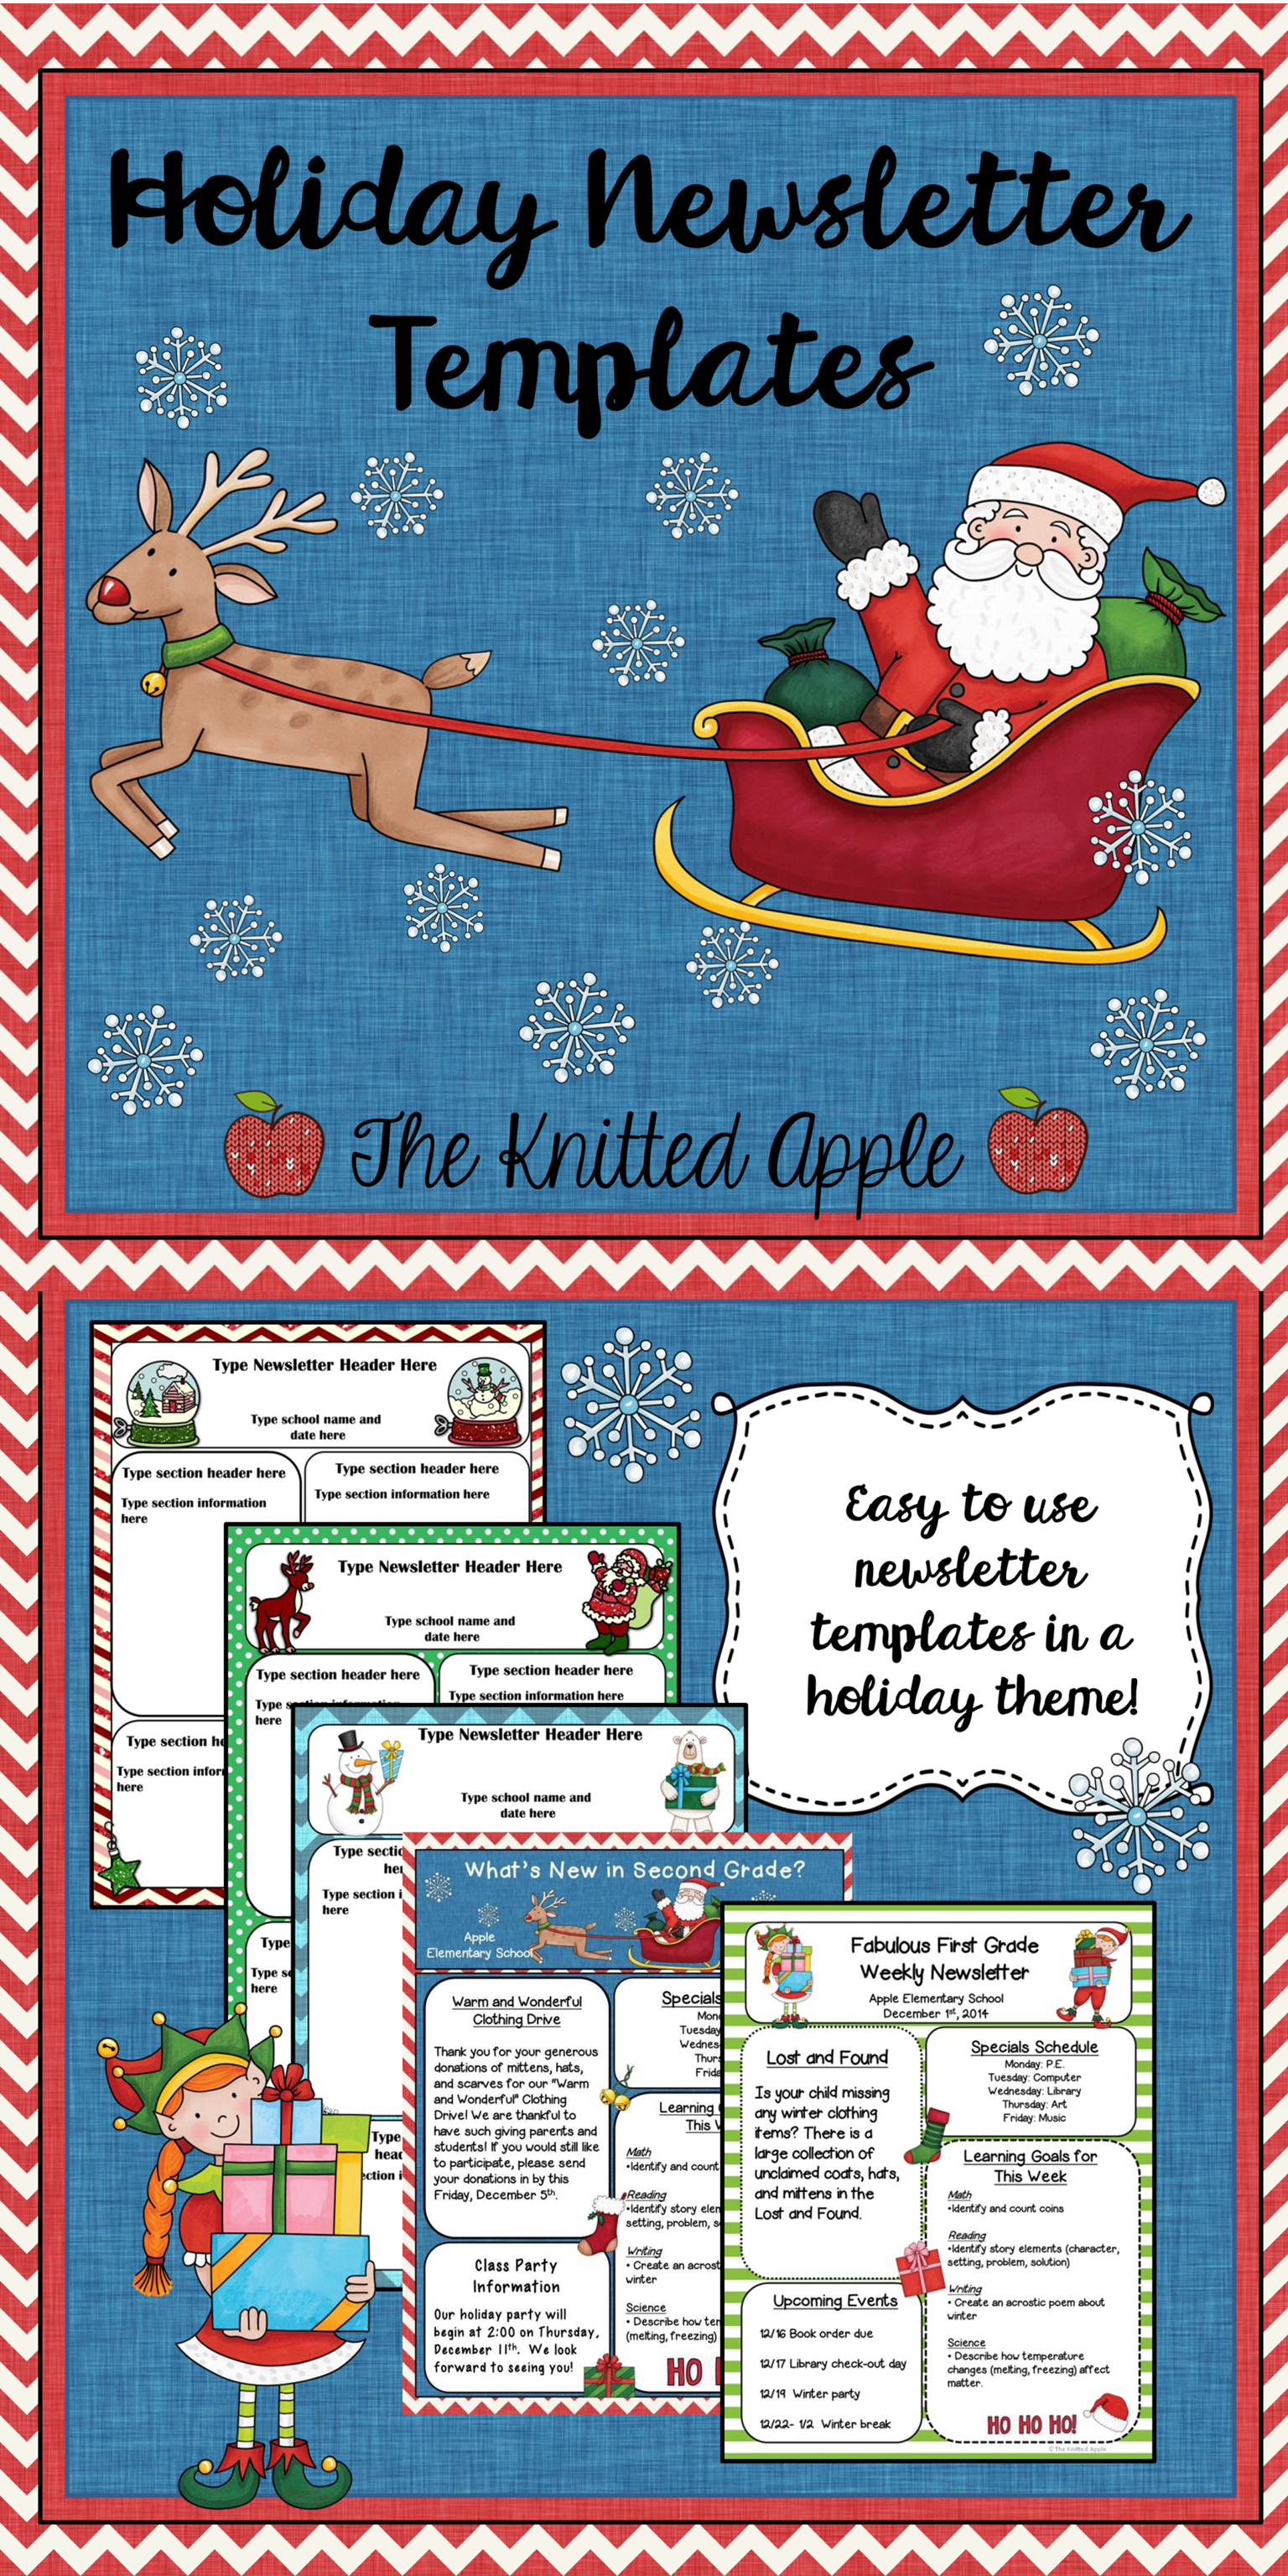 FREE newsletter templates in a festive holiday theme!